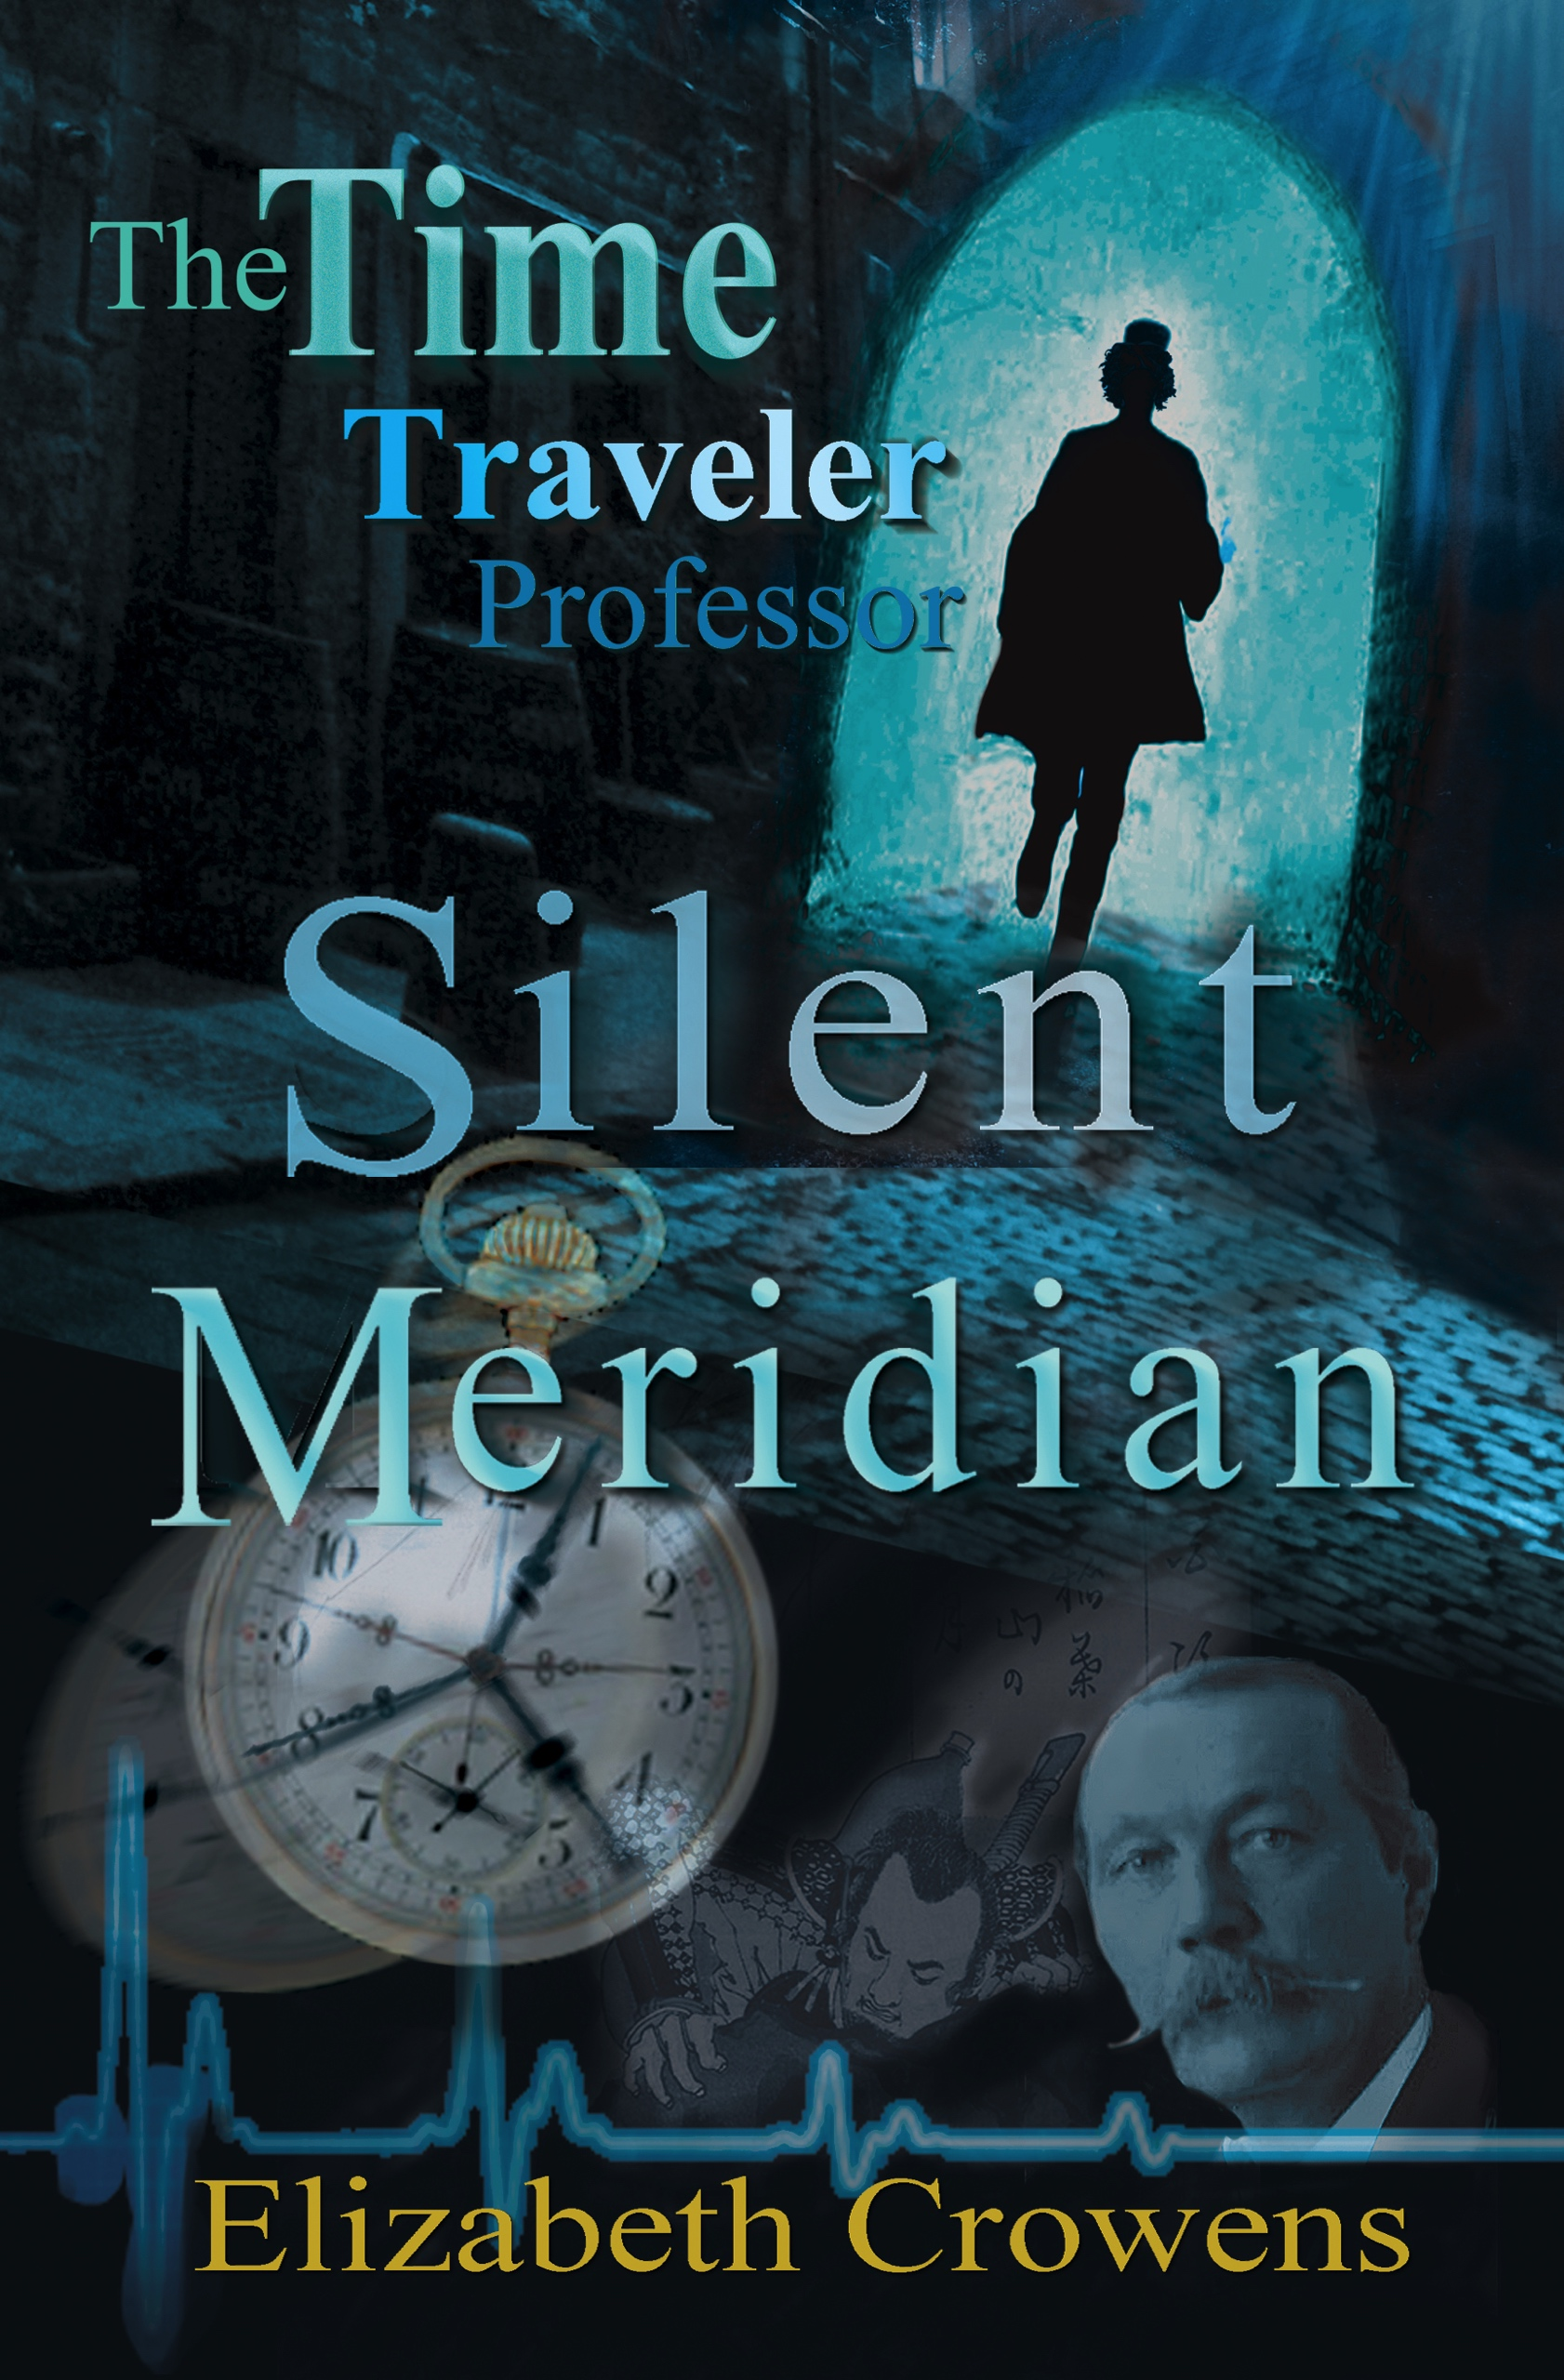 The Time Traveler Professor Book One: Silent Meridian cover image